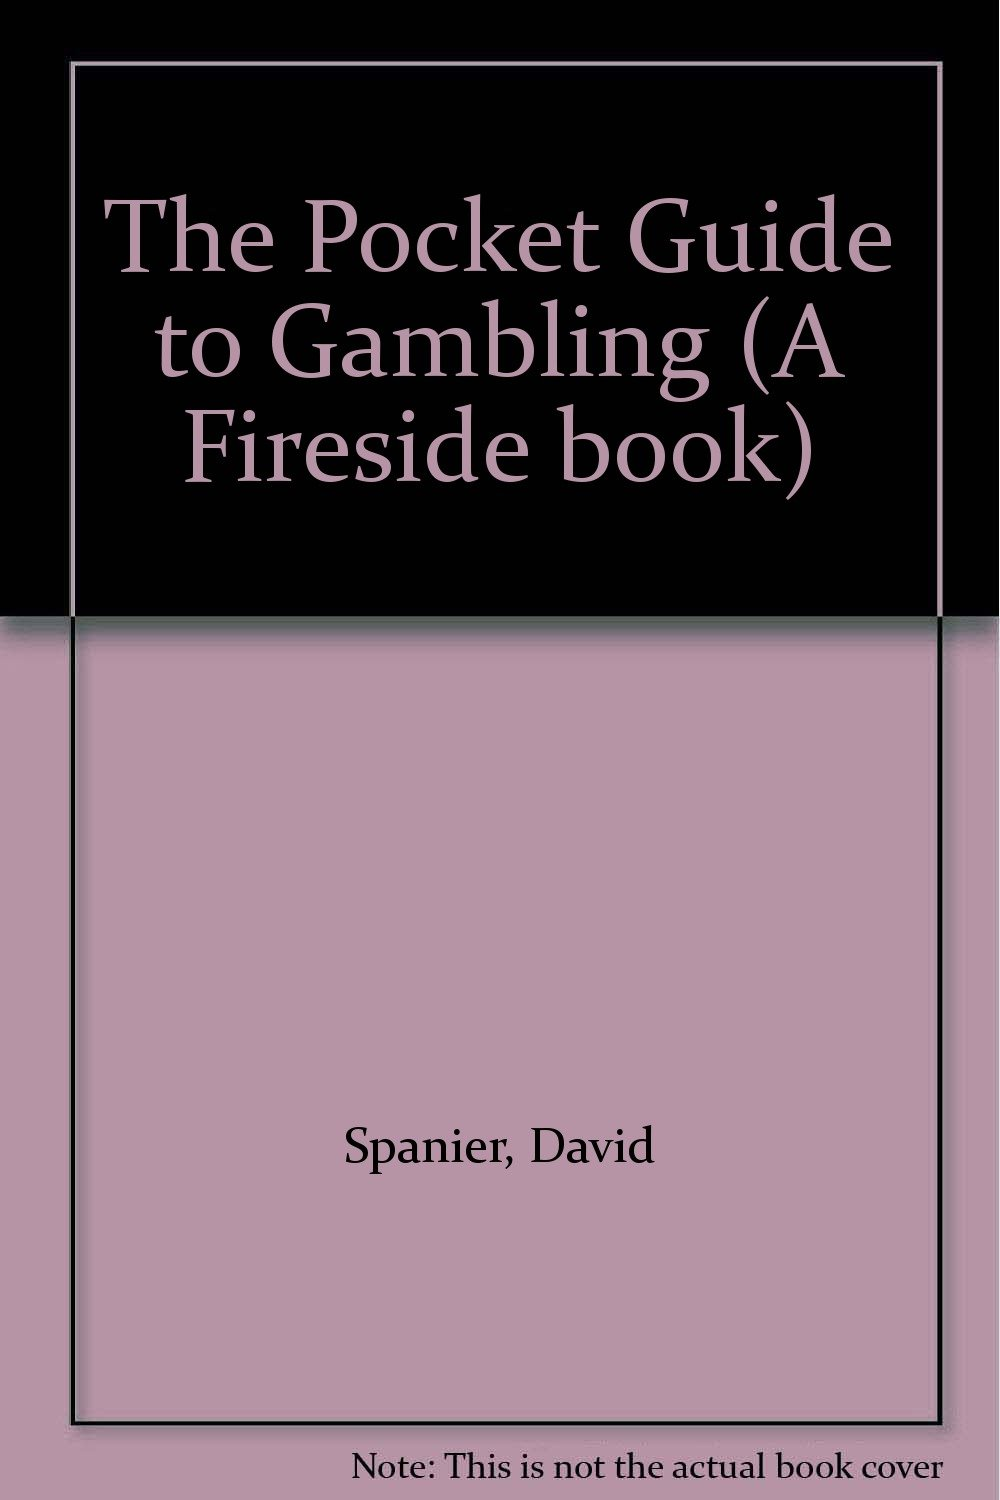 Book gambling guide problem gambling personality